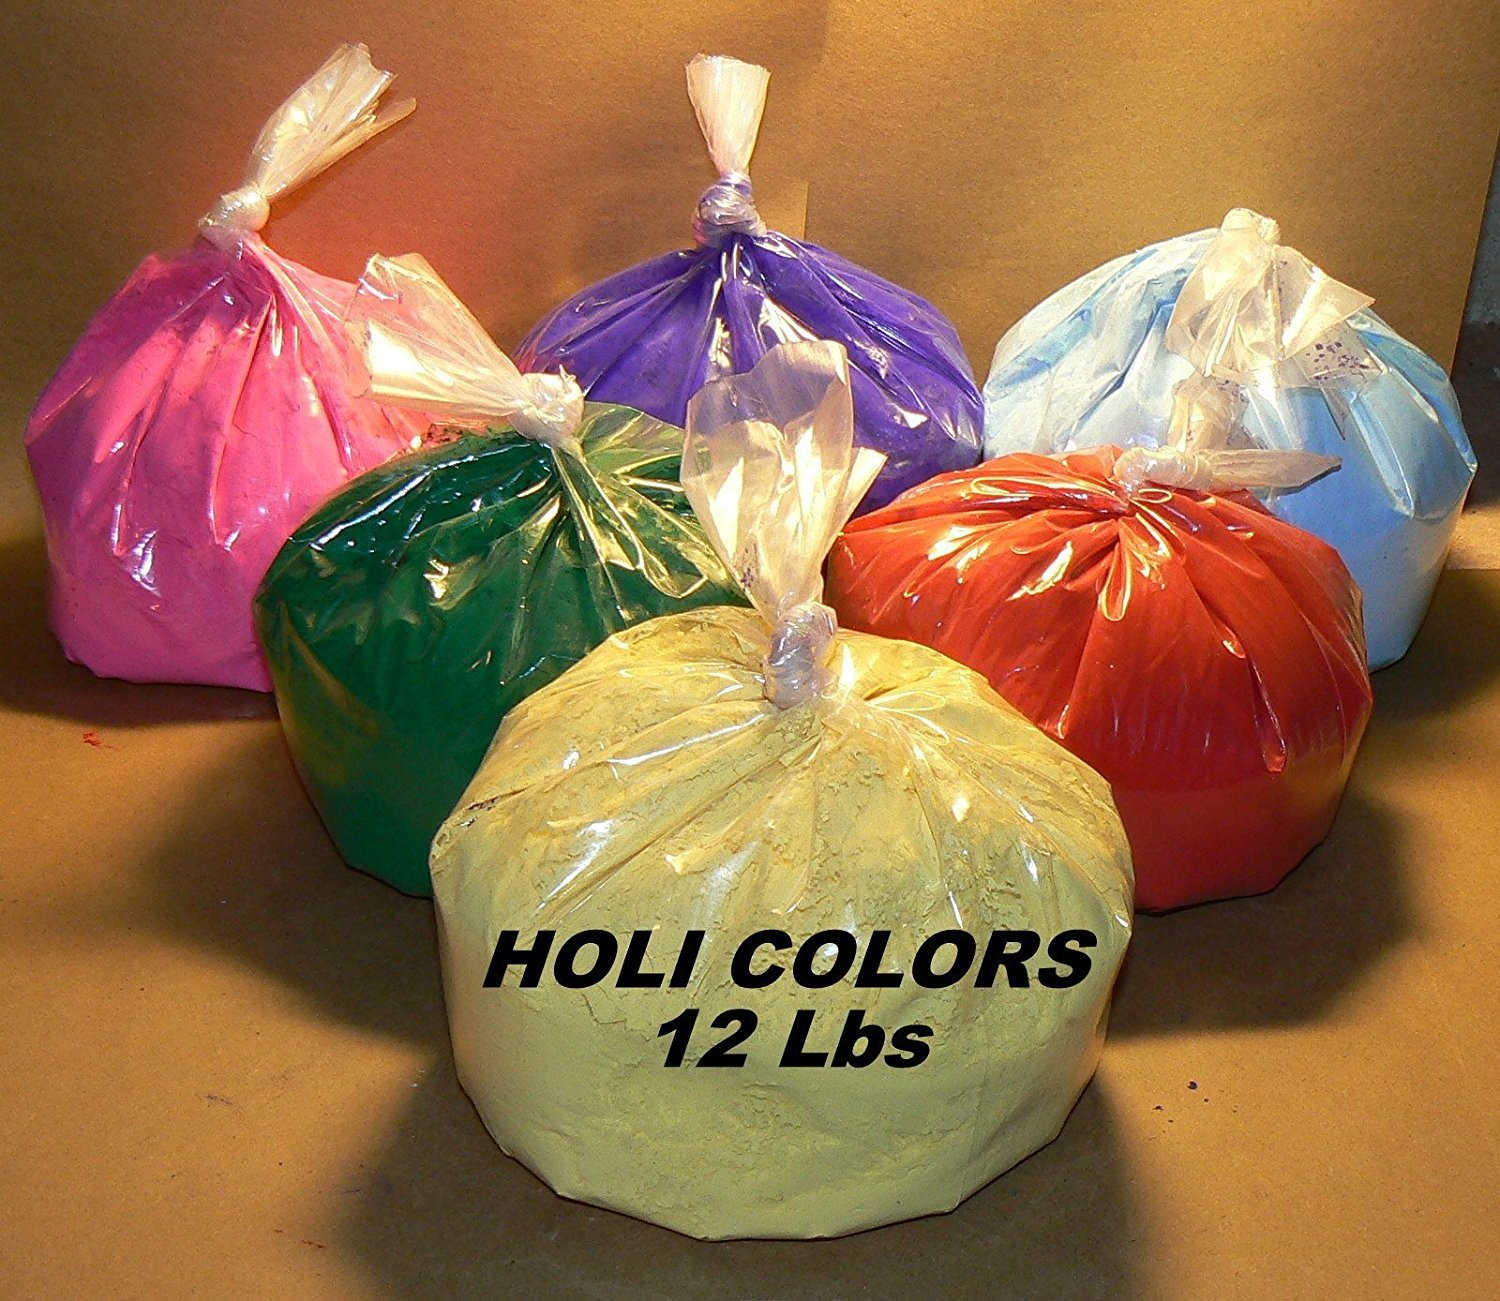 HOLI Colors 12 Lbs 6 colors (2lbs ea color) RED, YELLOW, PINK, BLUE, GREEN, AND PURPLE - SHIPS FROM LOS ANGELES 3 TO 6 DAYS DELIVERY by All India Store